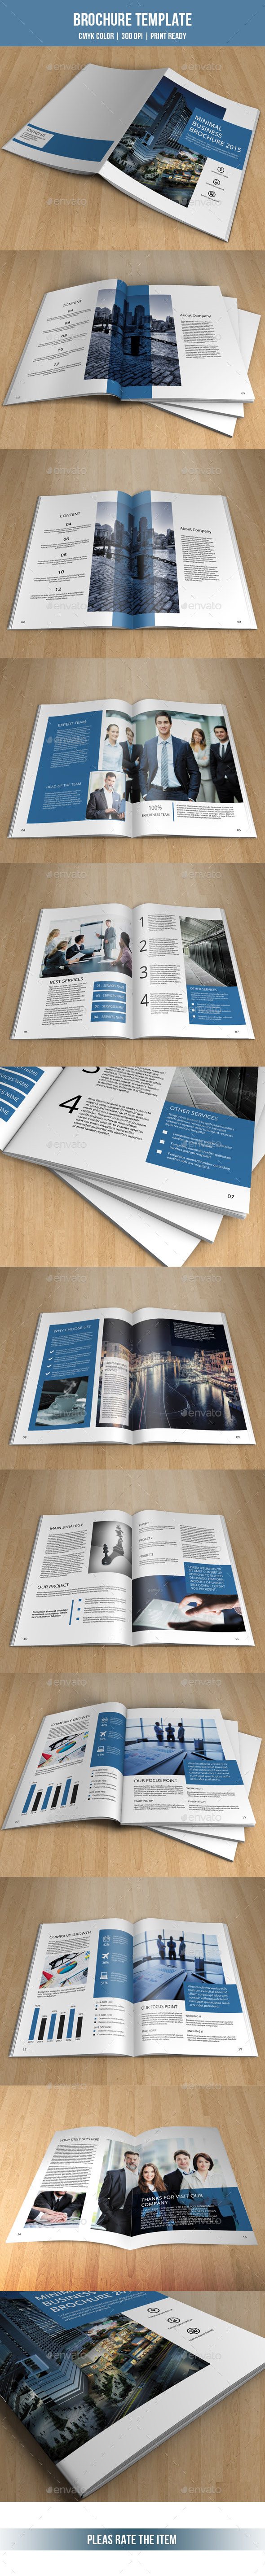 GraphicRiver Corporate Bifold Brochure-V203 10503080